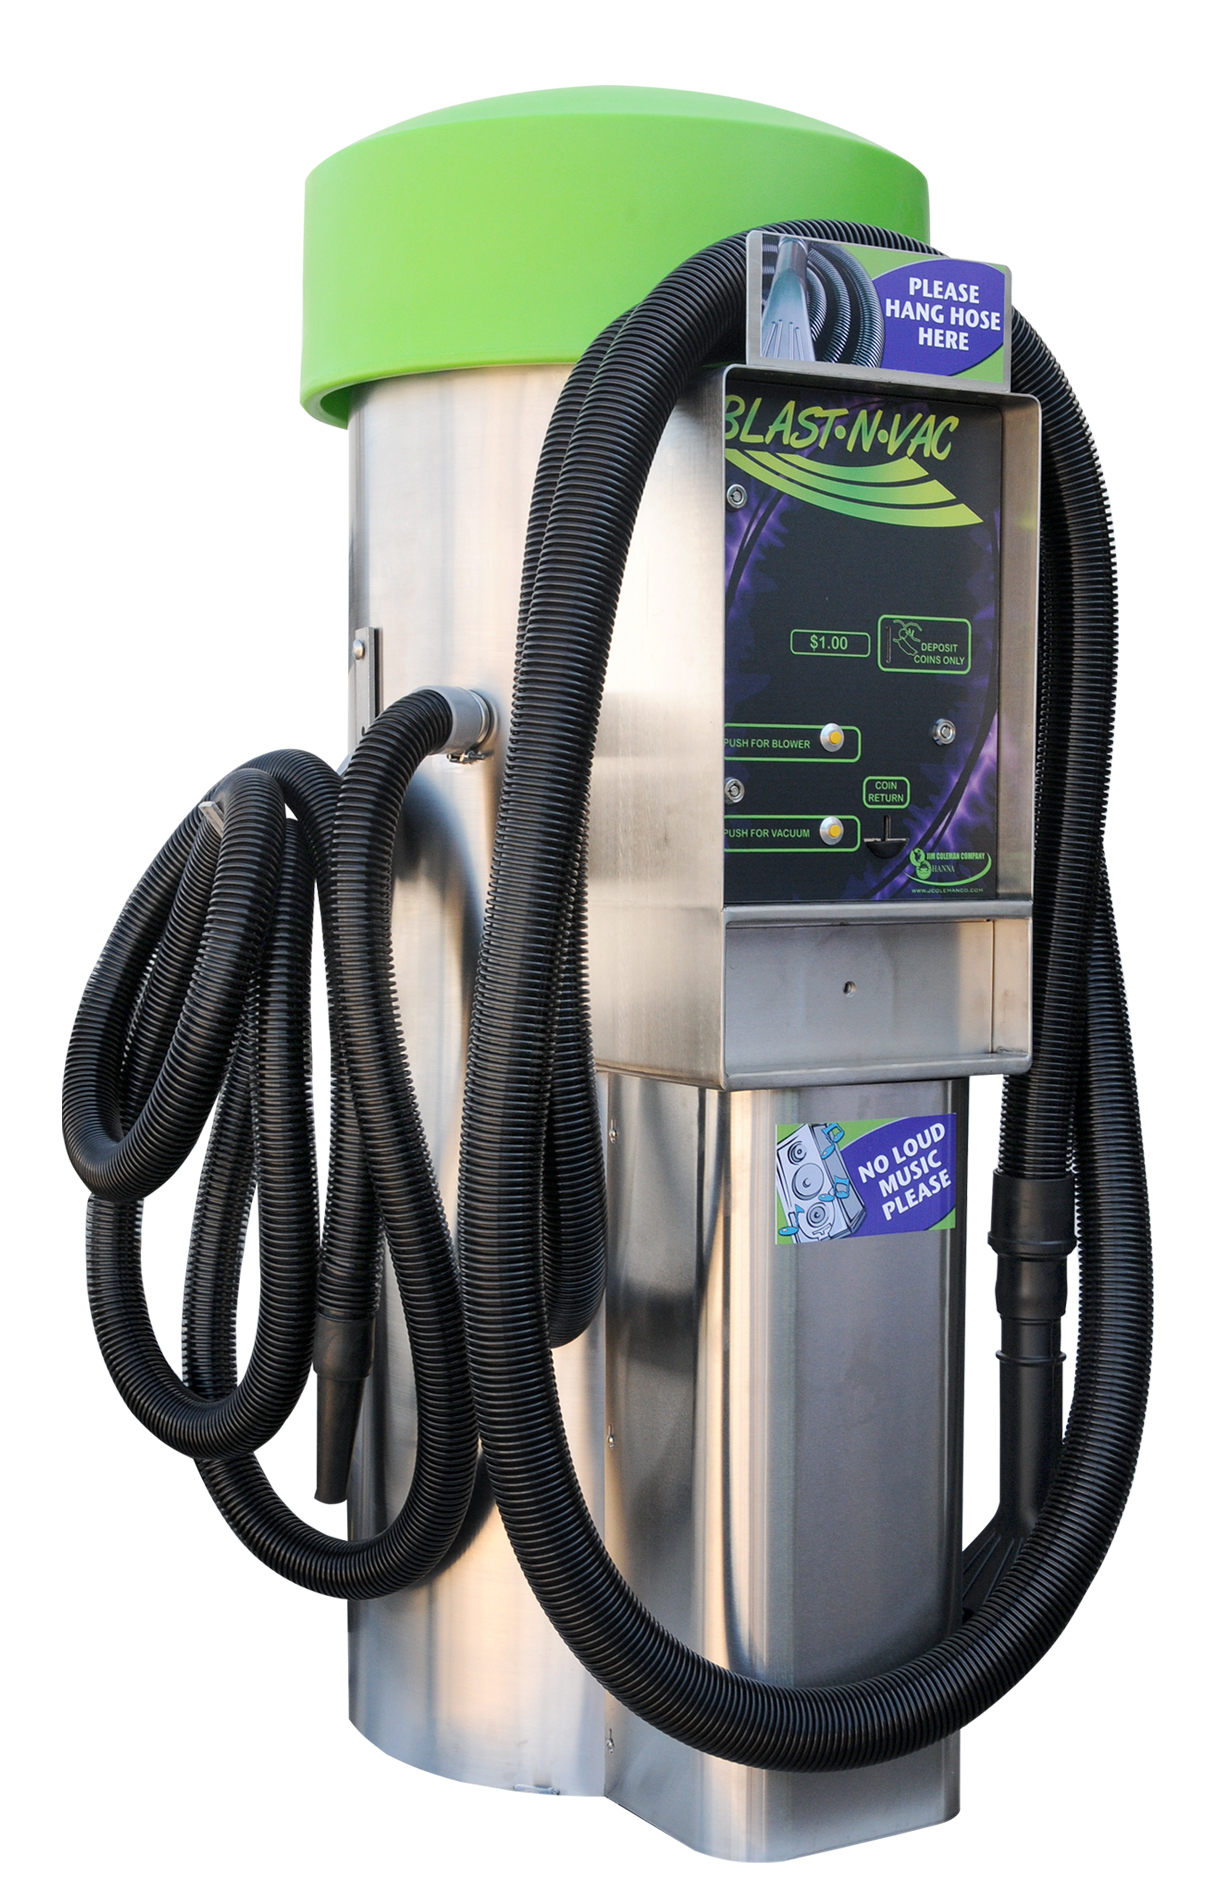 Vacuums Coleman Hanna Carwash Systems Wiring Diagram As Well Central Vacuum On Industrial A High Velocity Air Blower System Combined With Powerful